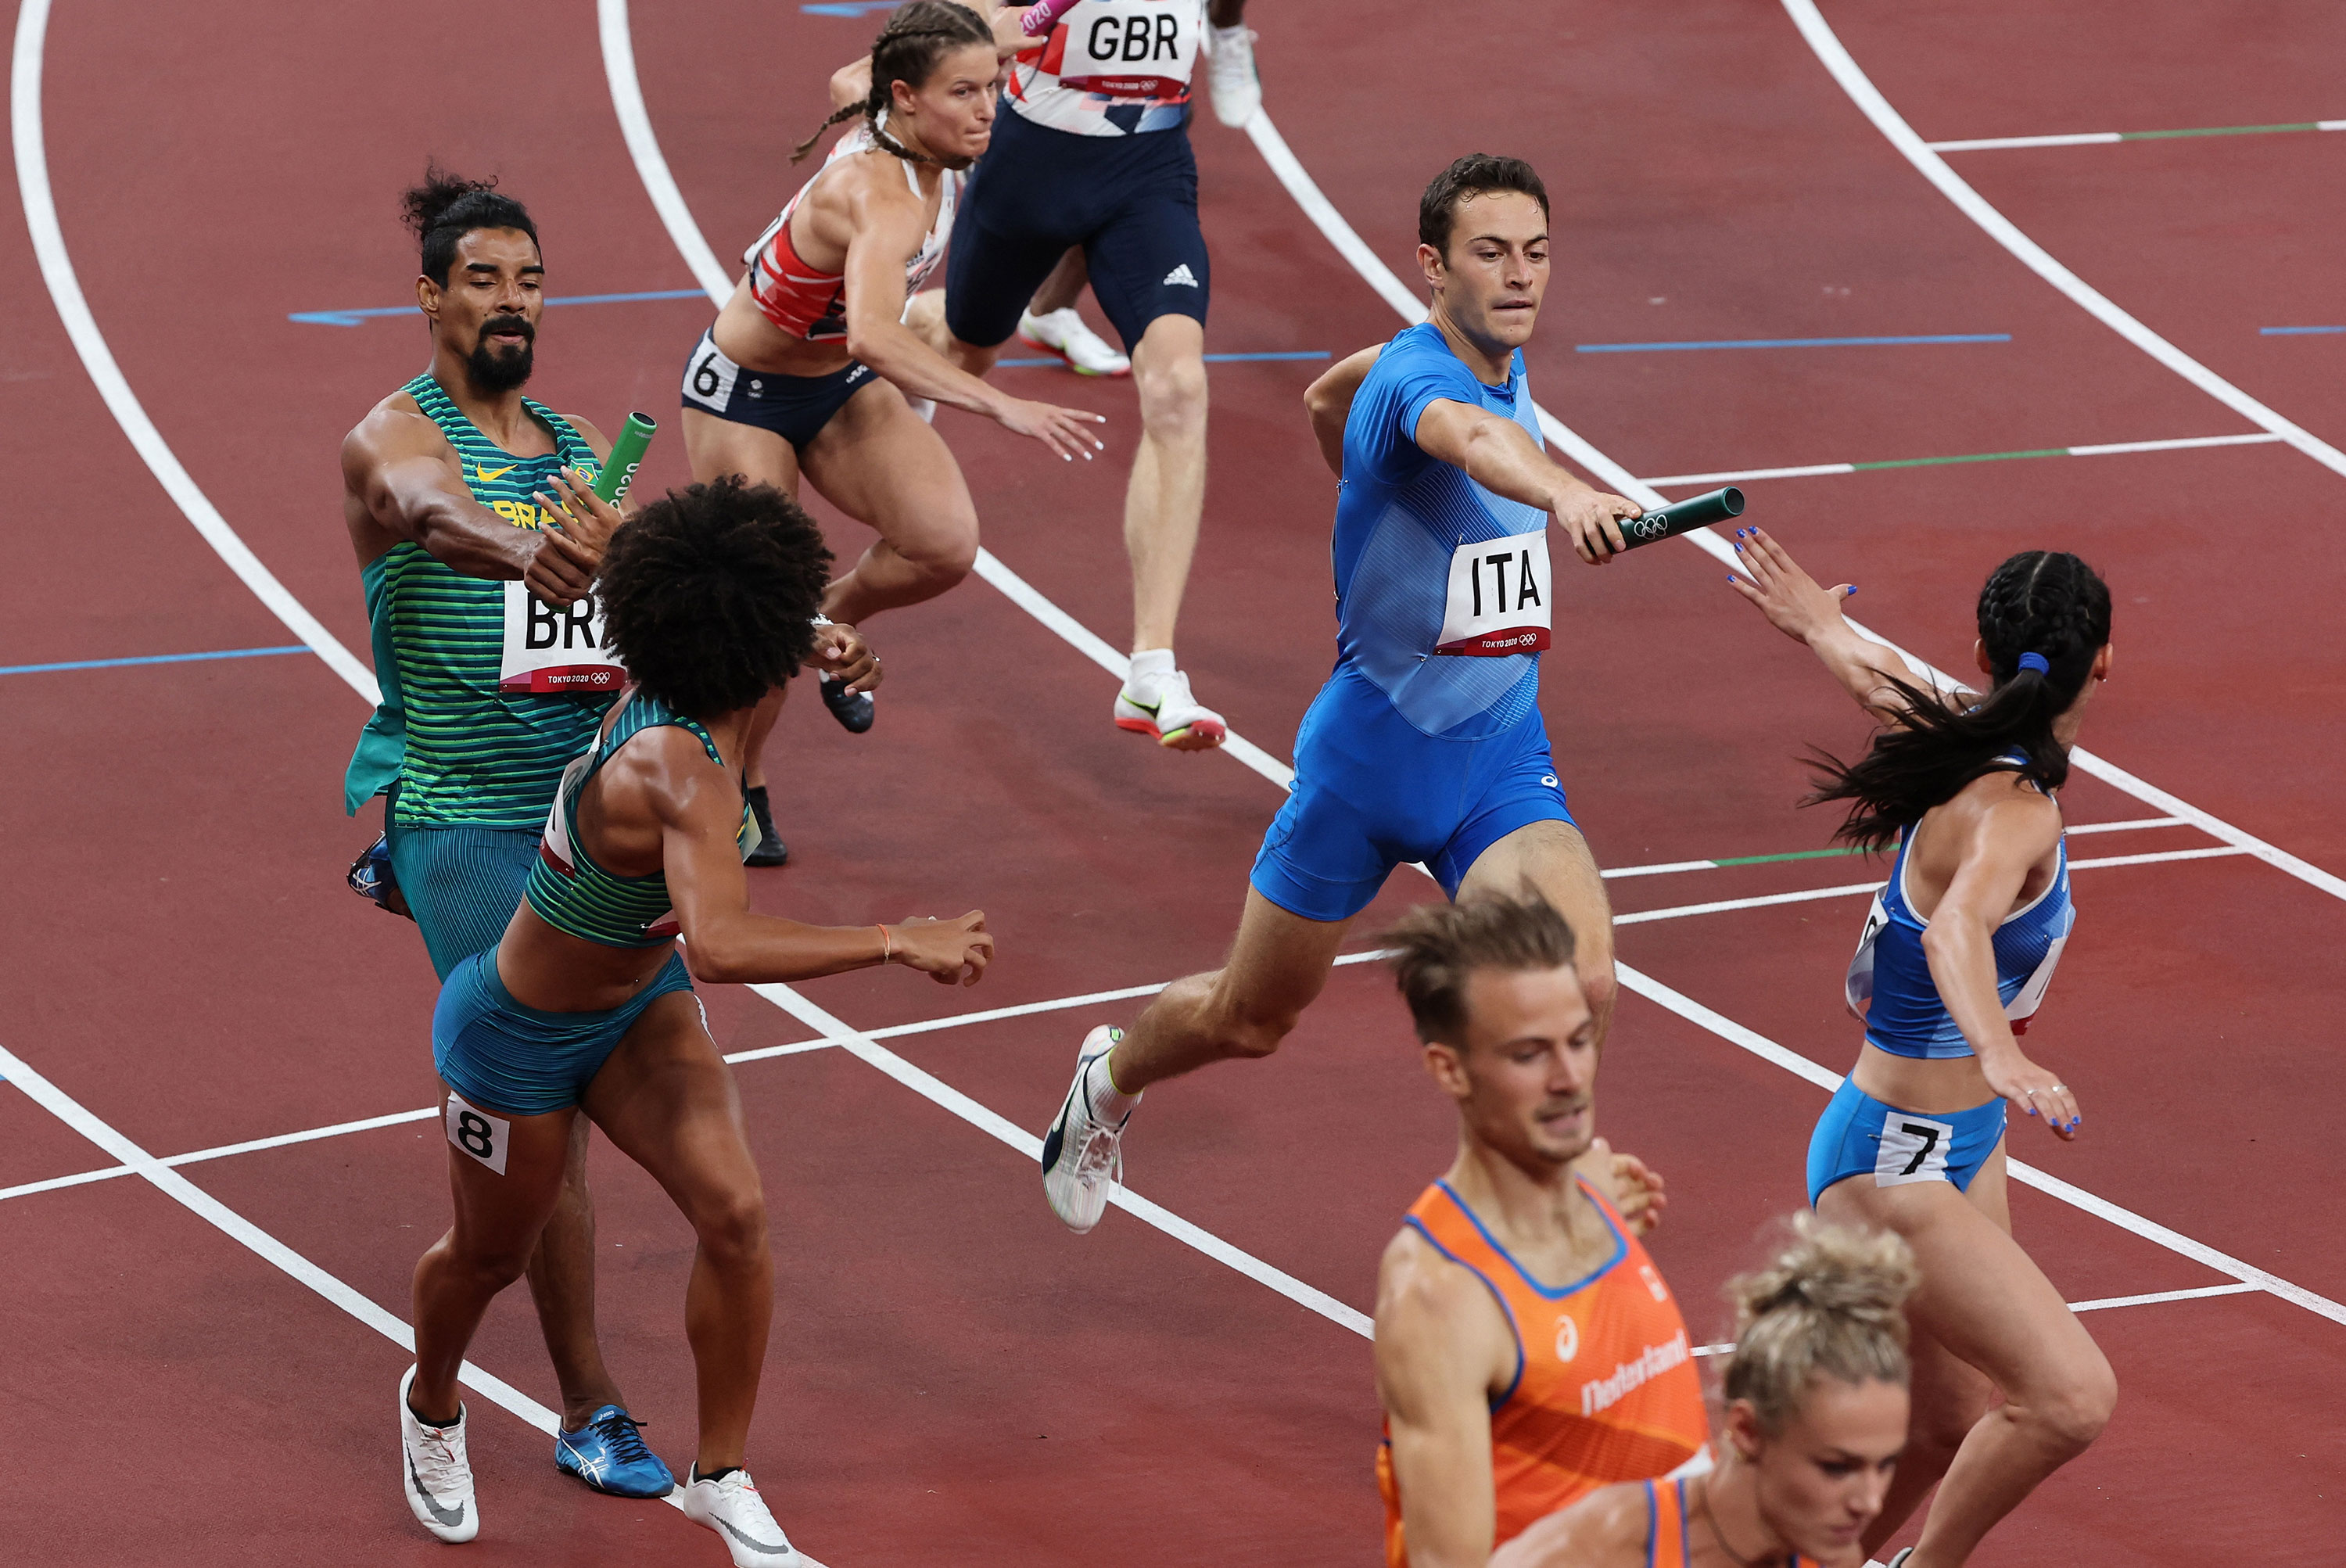 Athletes from Brazil, Great Britain, Italy and Netherlands compete in the mixed 4x400-meter relay heat on July 30.